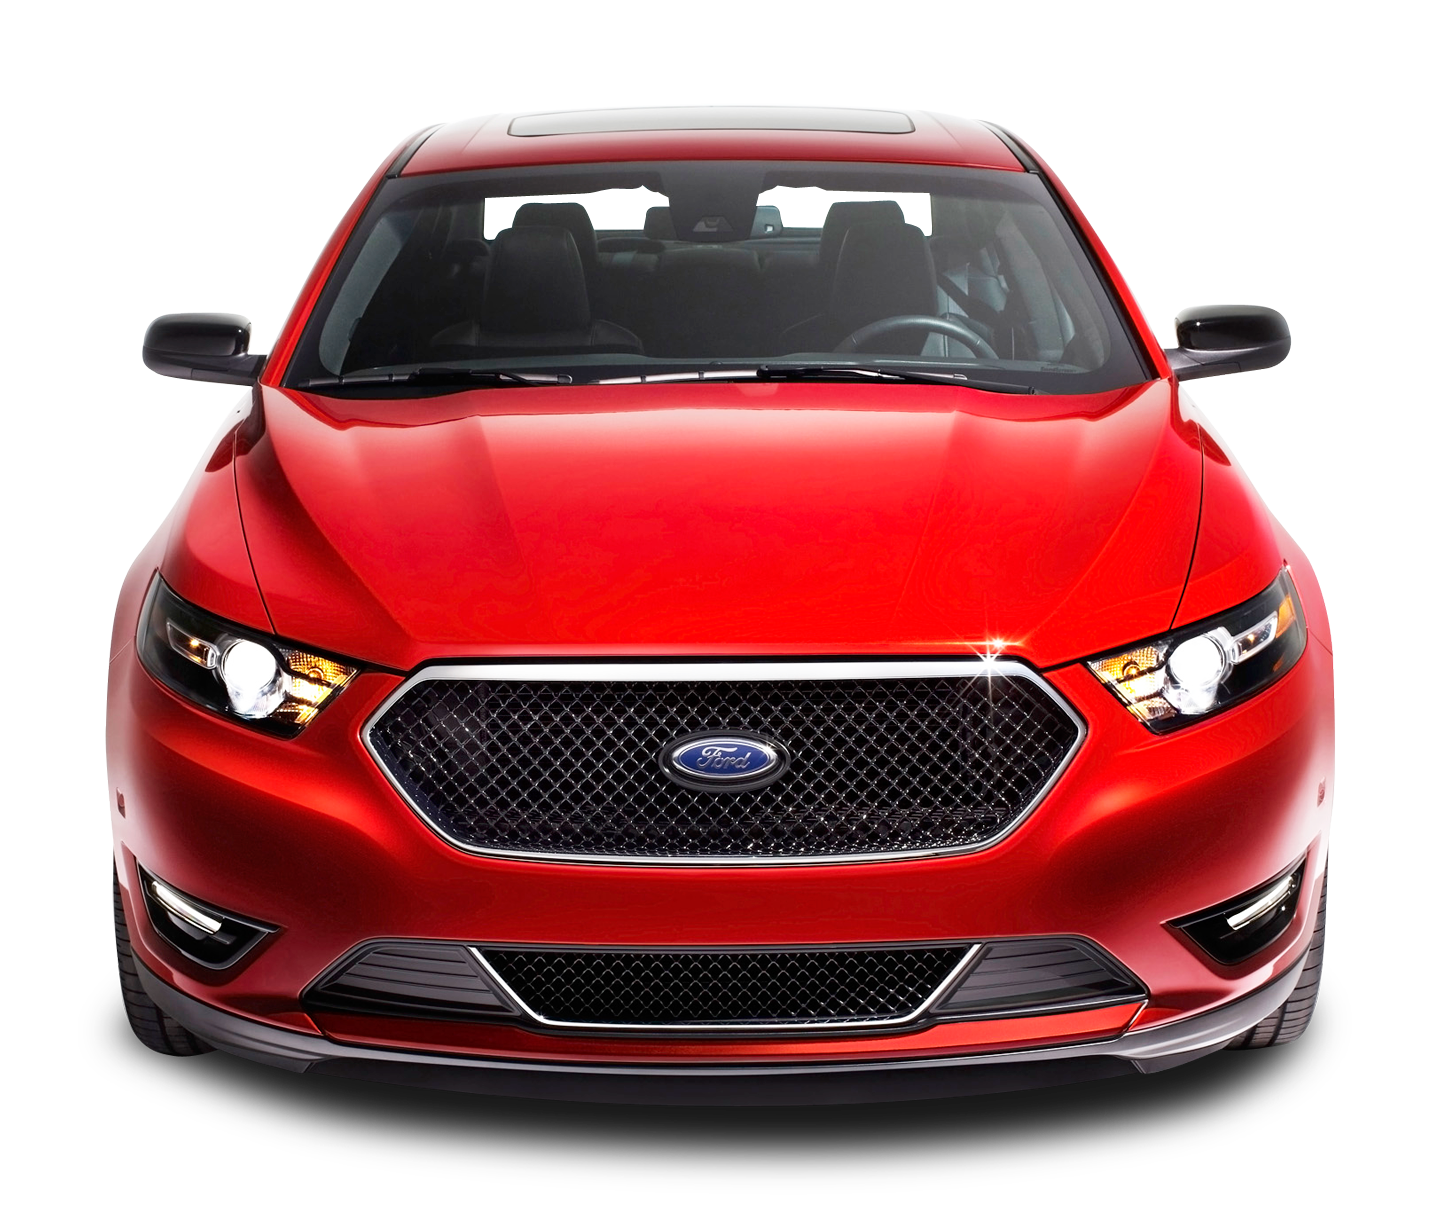 Red Ford Taurus Front Car Png Image Ford Taurus Sho Car Ford Ford